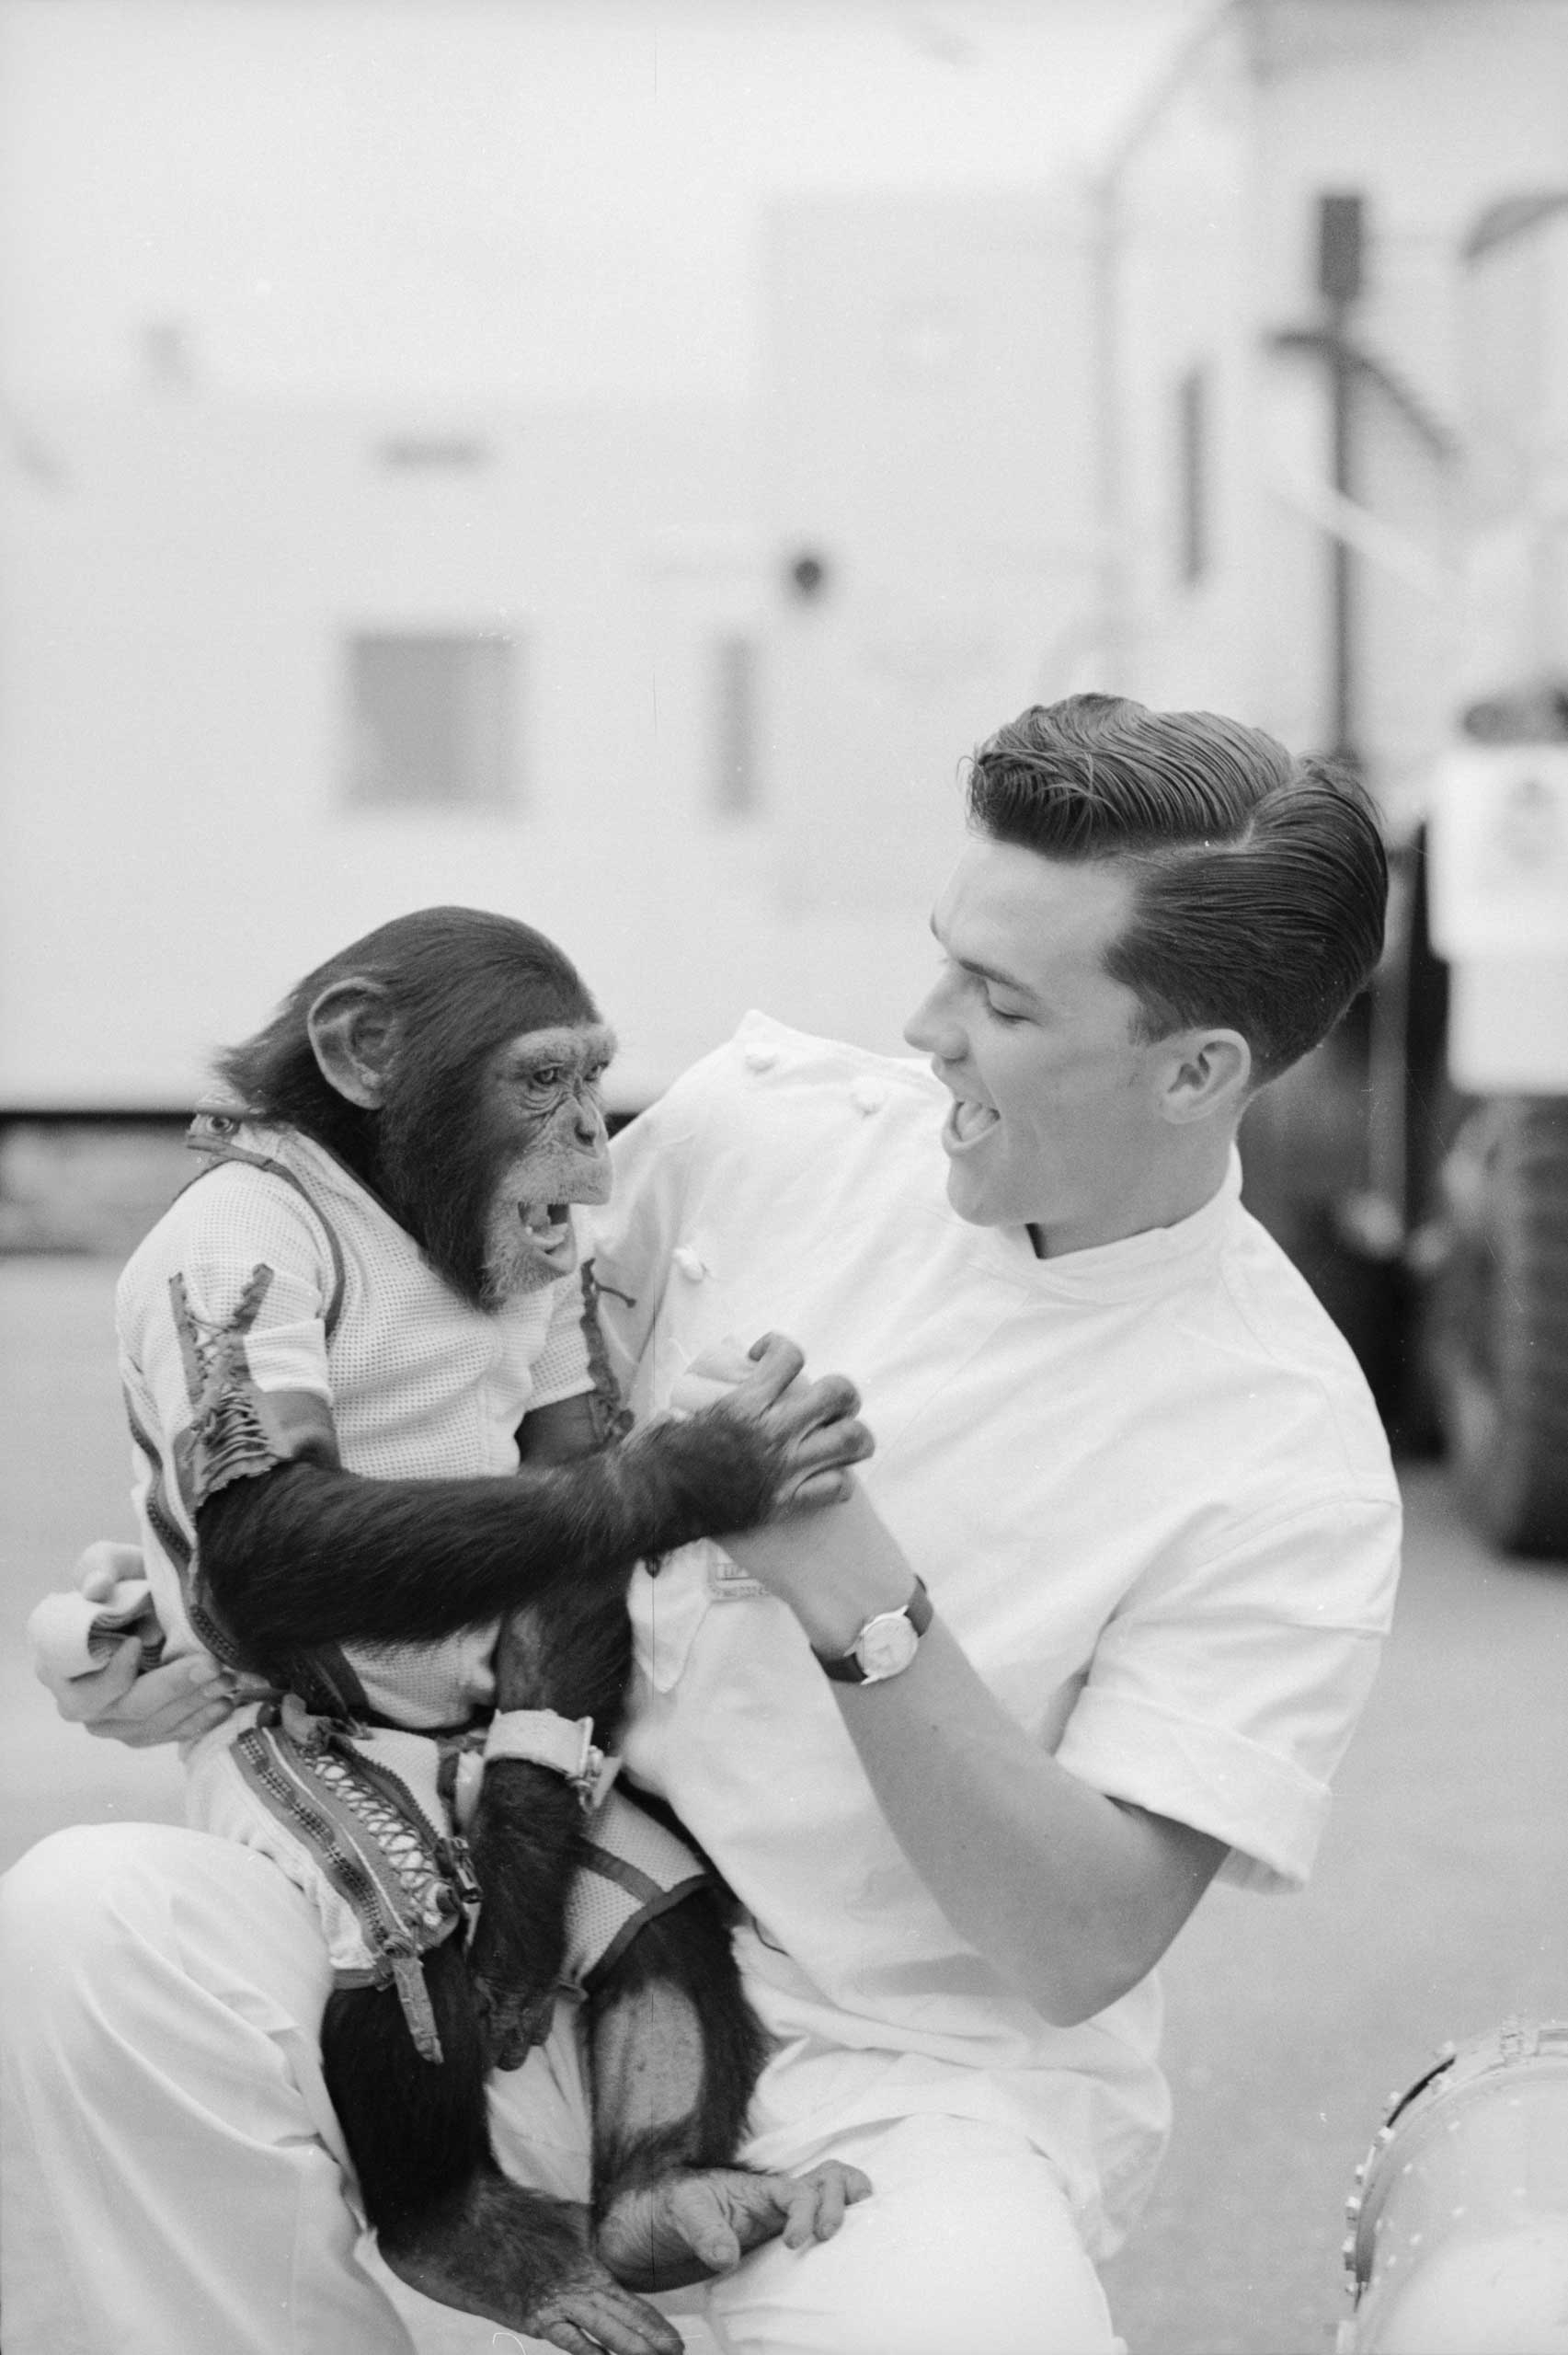 Ham the astrochimp and his handler, Cape Canaveral, Florida, 1961.